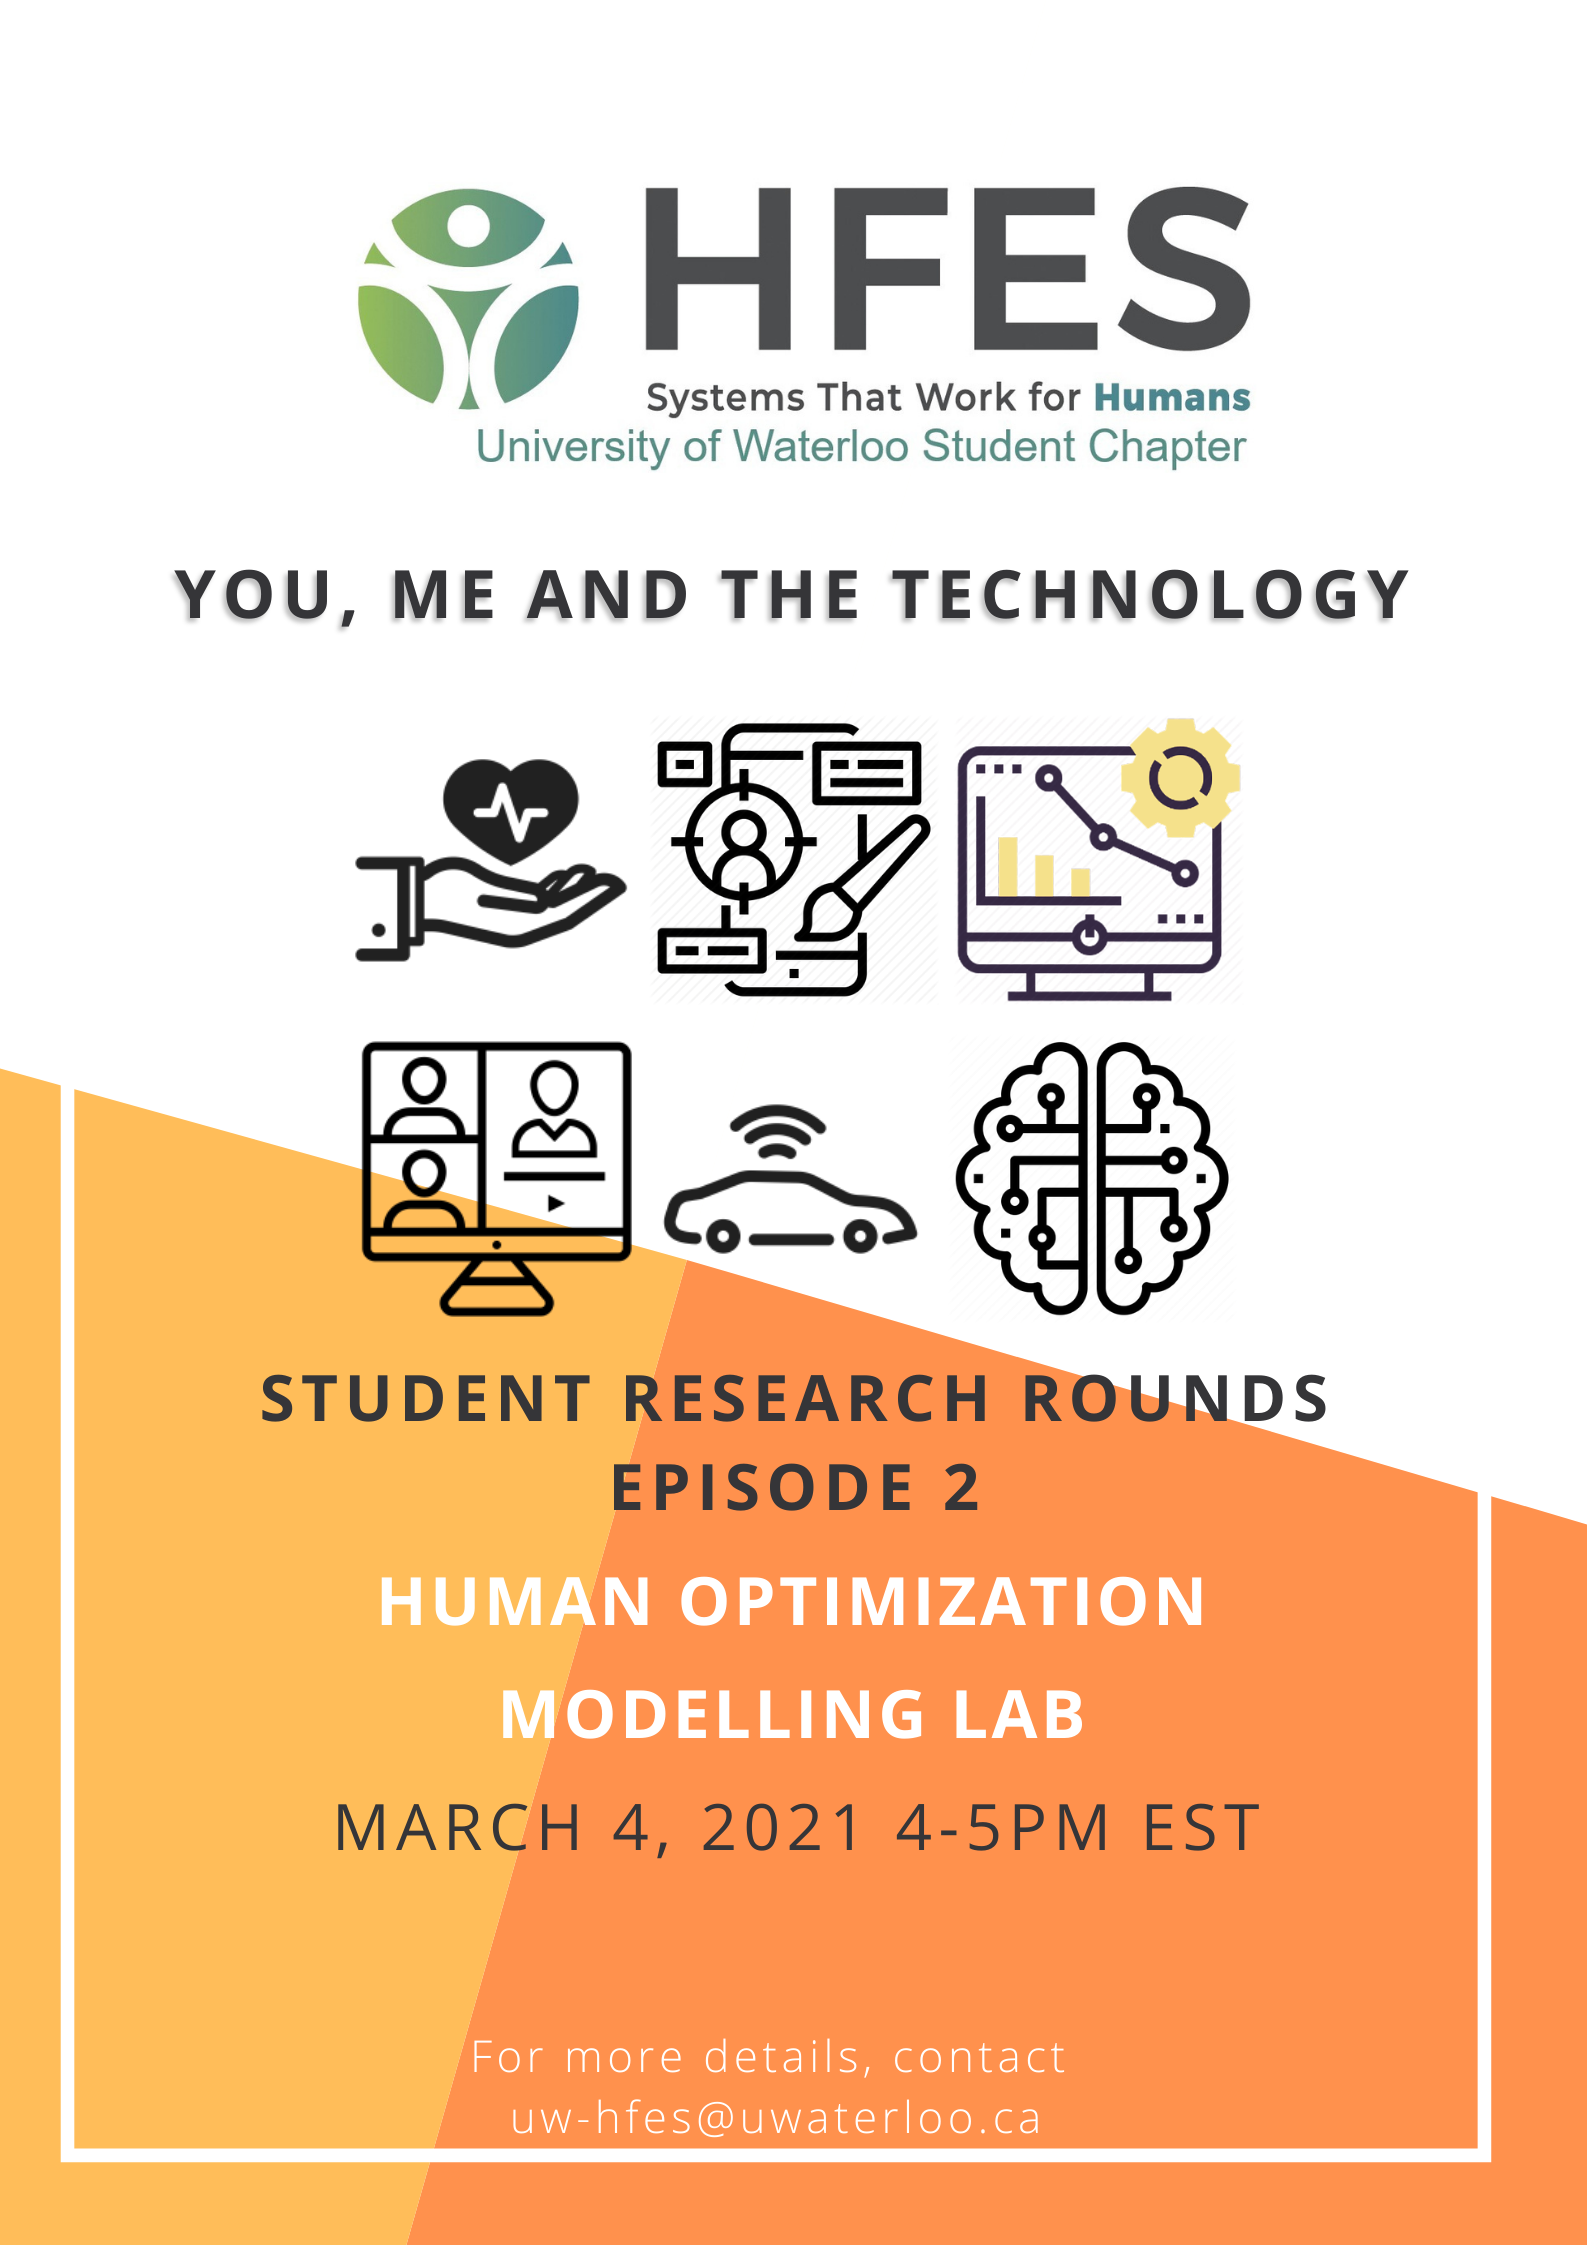 Student Research Rounds, Episode 2 featuring Human Optimization Modelling Lab